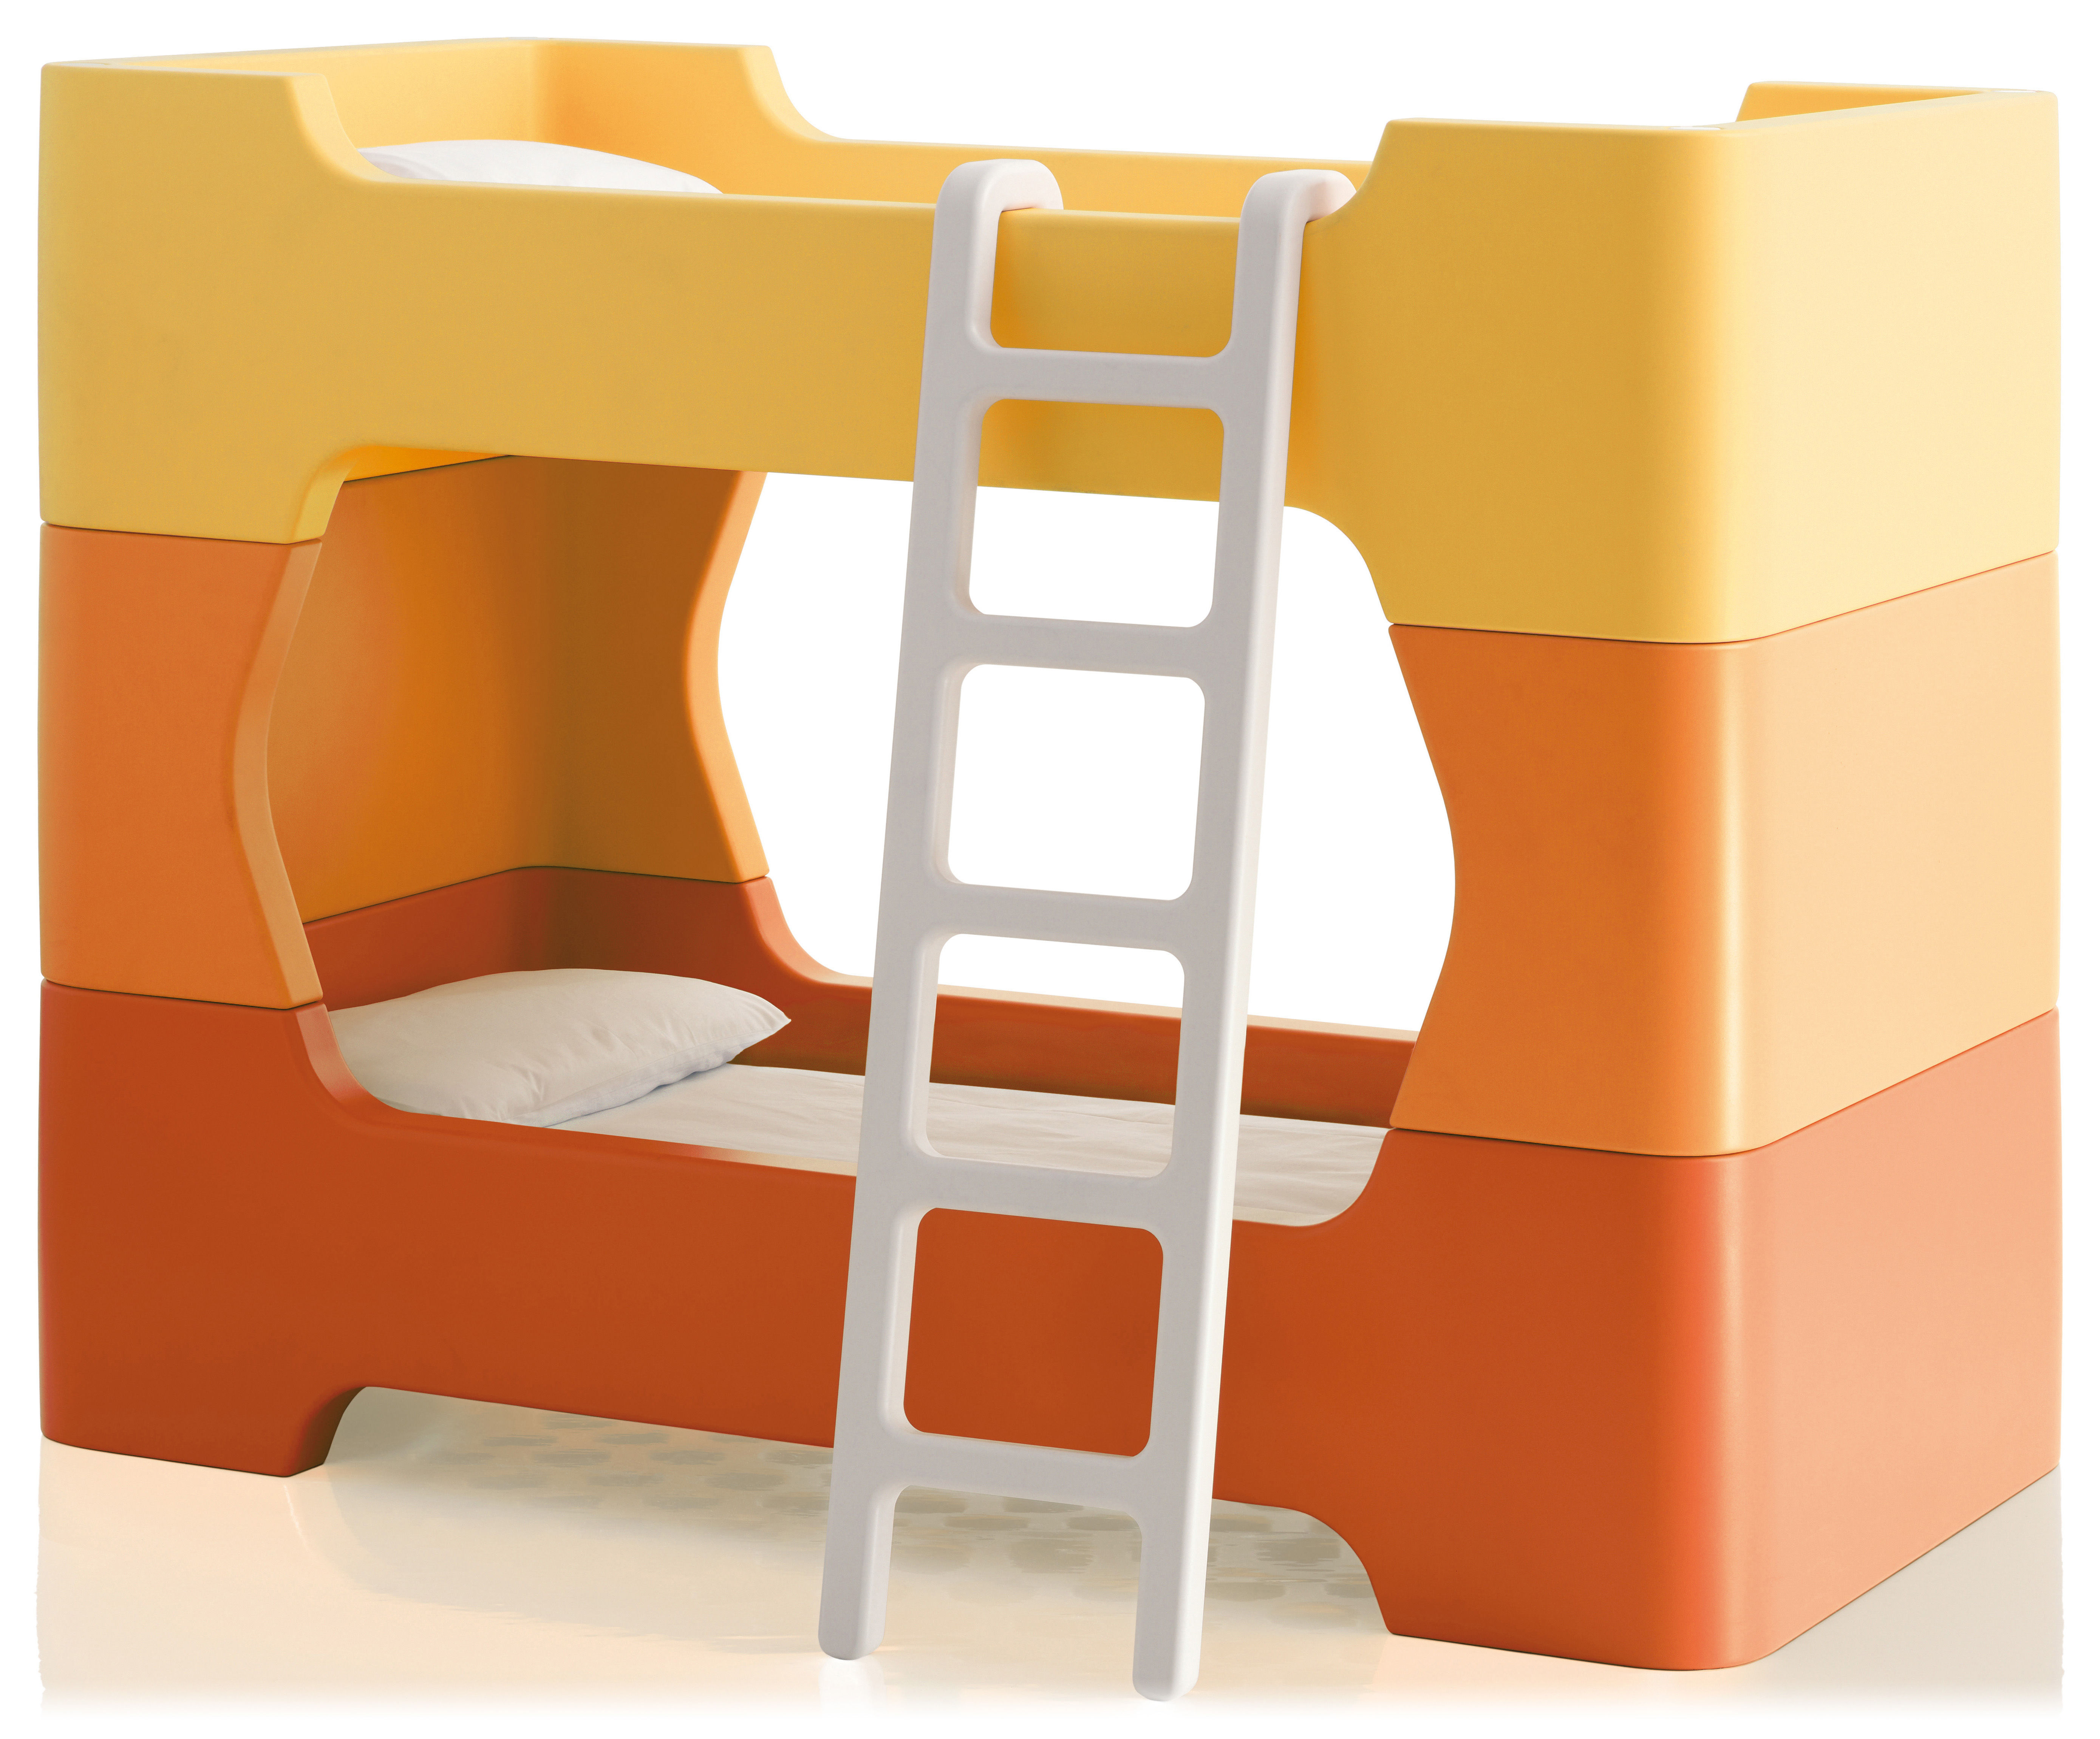 Furniture - Beds - Bunky Bunk beds - With ladder - Without mattress by Magis Collection Me Too - Orange - Polythene